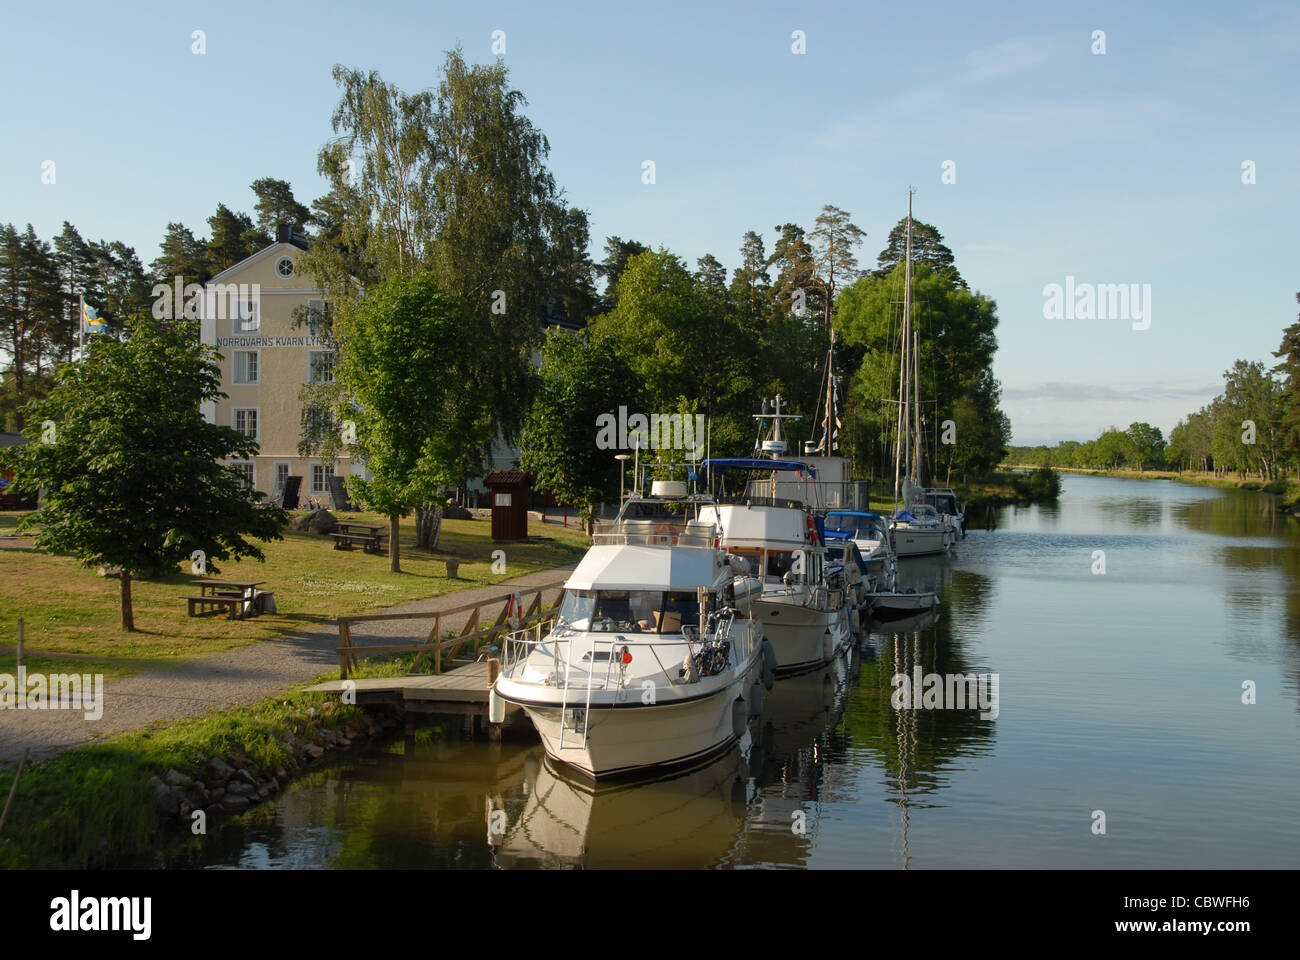 Yachts moored at the quay of Lyrestad on the Göta-Kanal in central Sweden - Stock Image